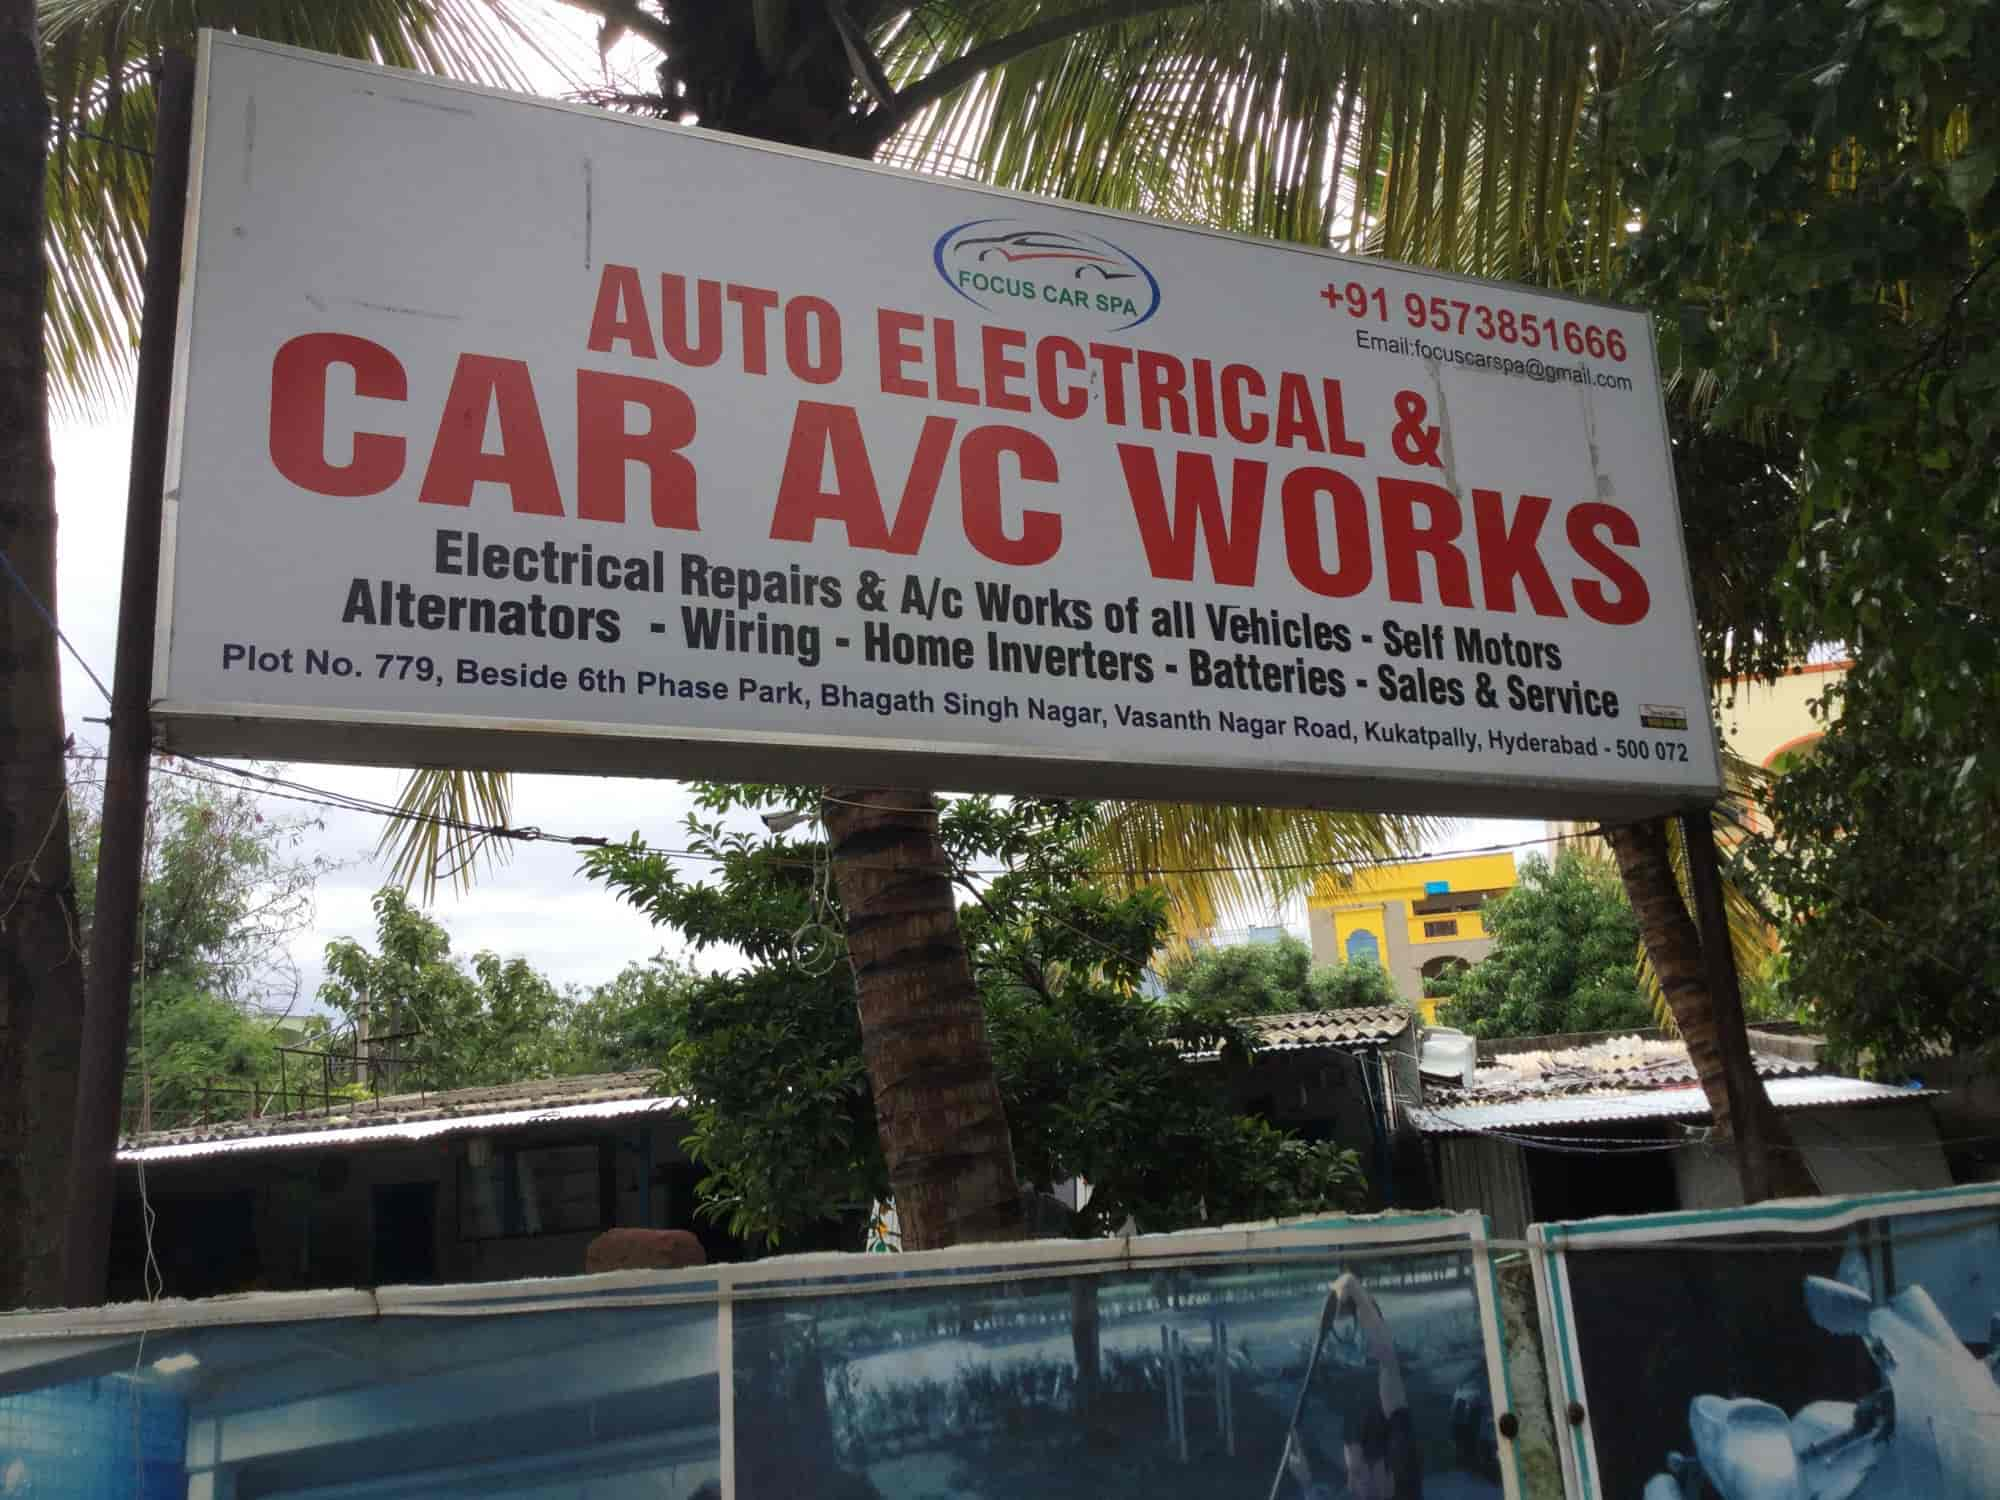 Focus Auto Electrical Car Ac Works Photos Bhagat Singh Nagar Wiring Signboard View Kukatpally